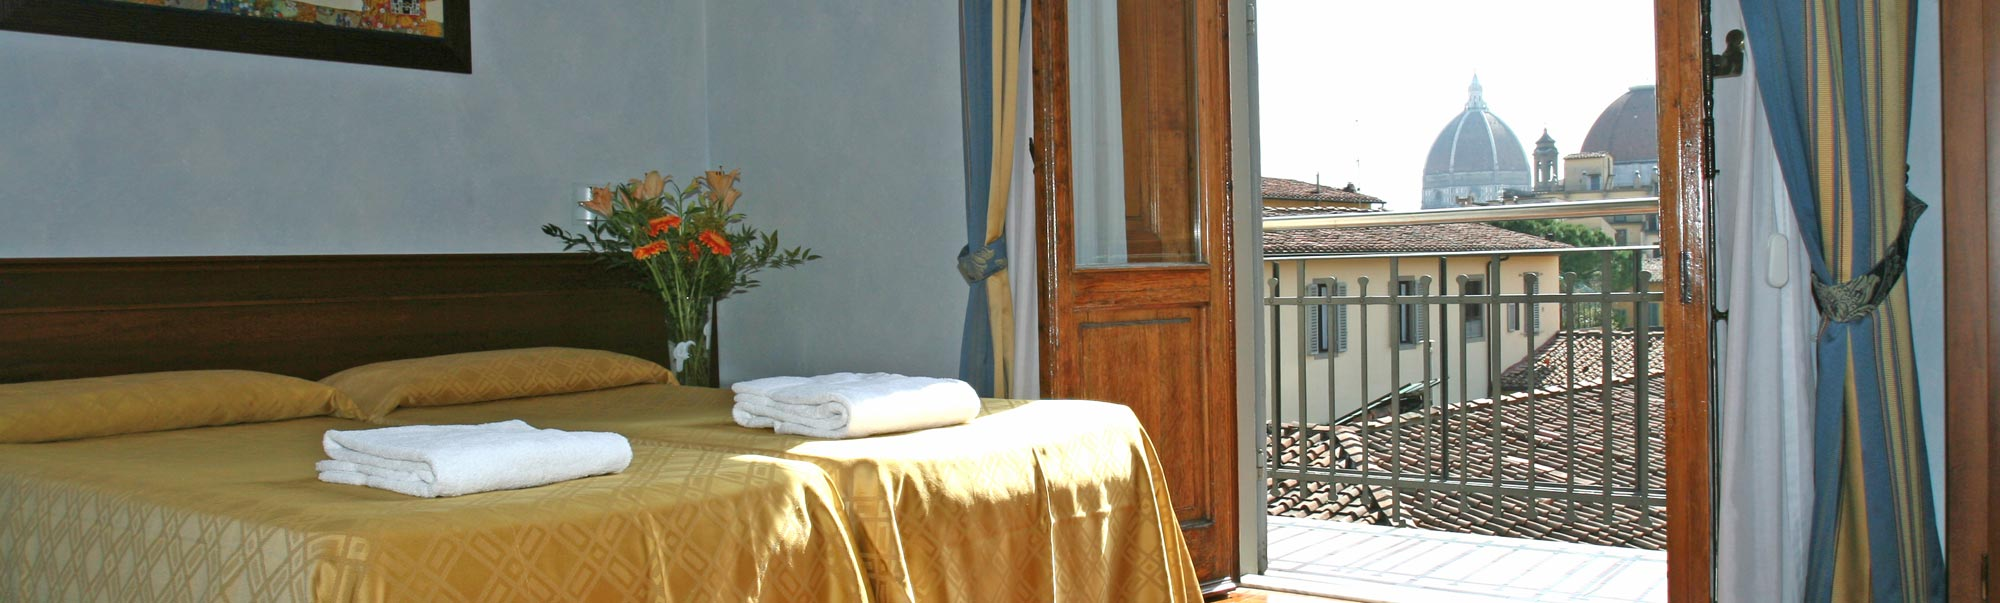 Hotel Palazzo Vecchio Florence Center - Official Site | 3 Stars Hotel Florence